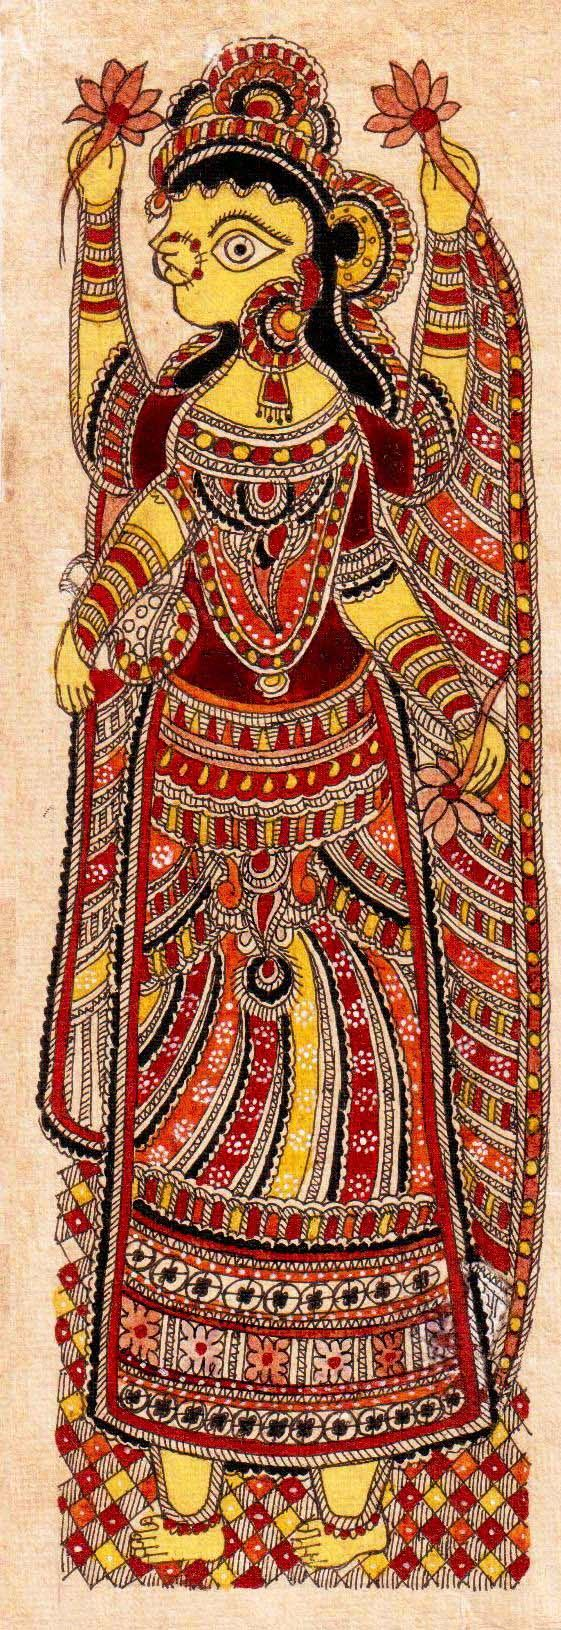 Madhubani or Mithila Paintings are said to have originated during the period of Ramayana, when King Janaka commissioned artists to do paintings during the wedding of his daughter, Sita to Lord Ram. The paintings usually depicted nature and Hindu religious motifs, the themes generally revolve around Hindu deities.http://handicrafts.exoticabazaar.com/view/4838-7-devi-laxmi113.html